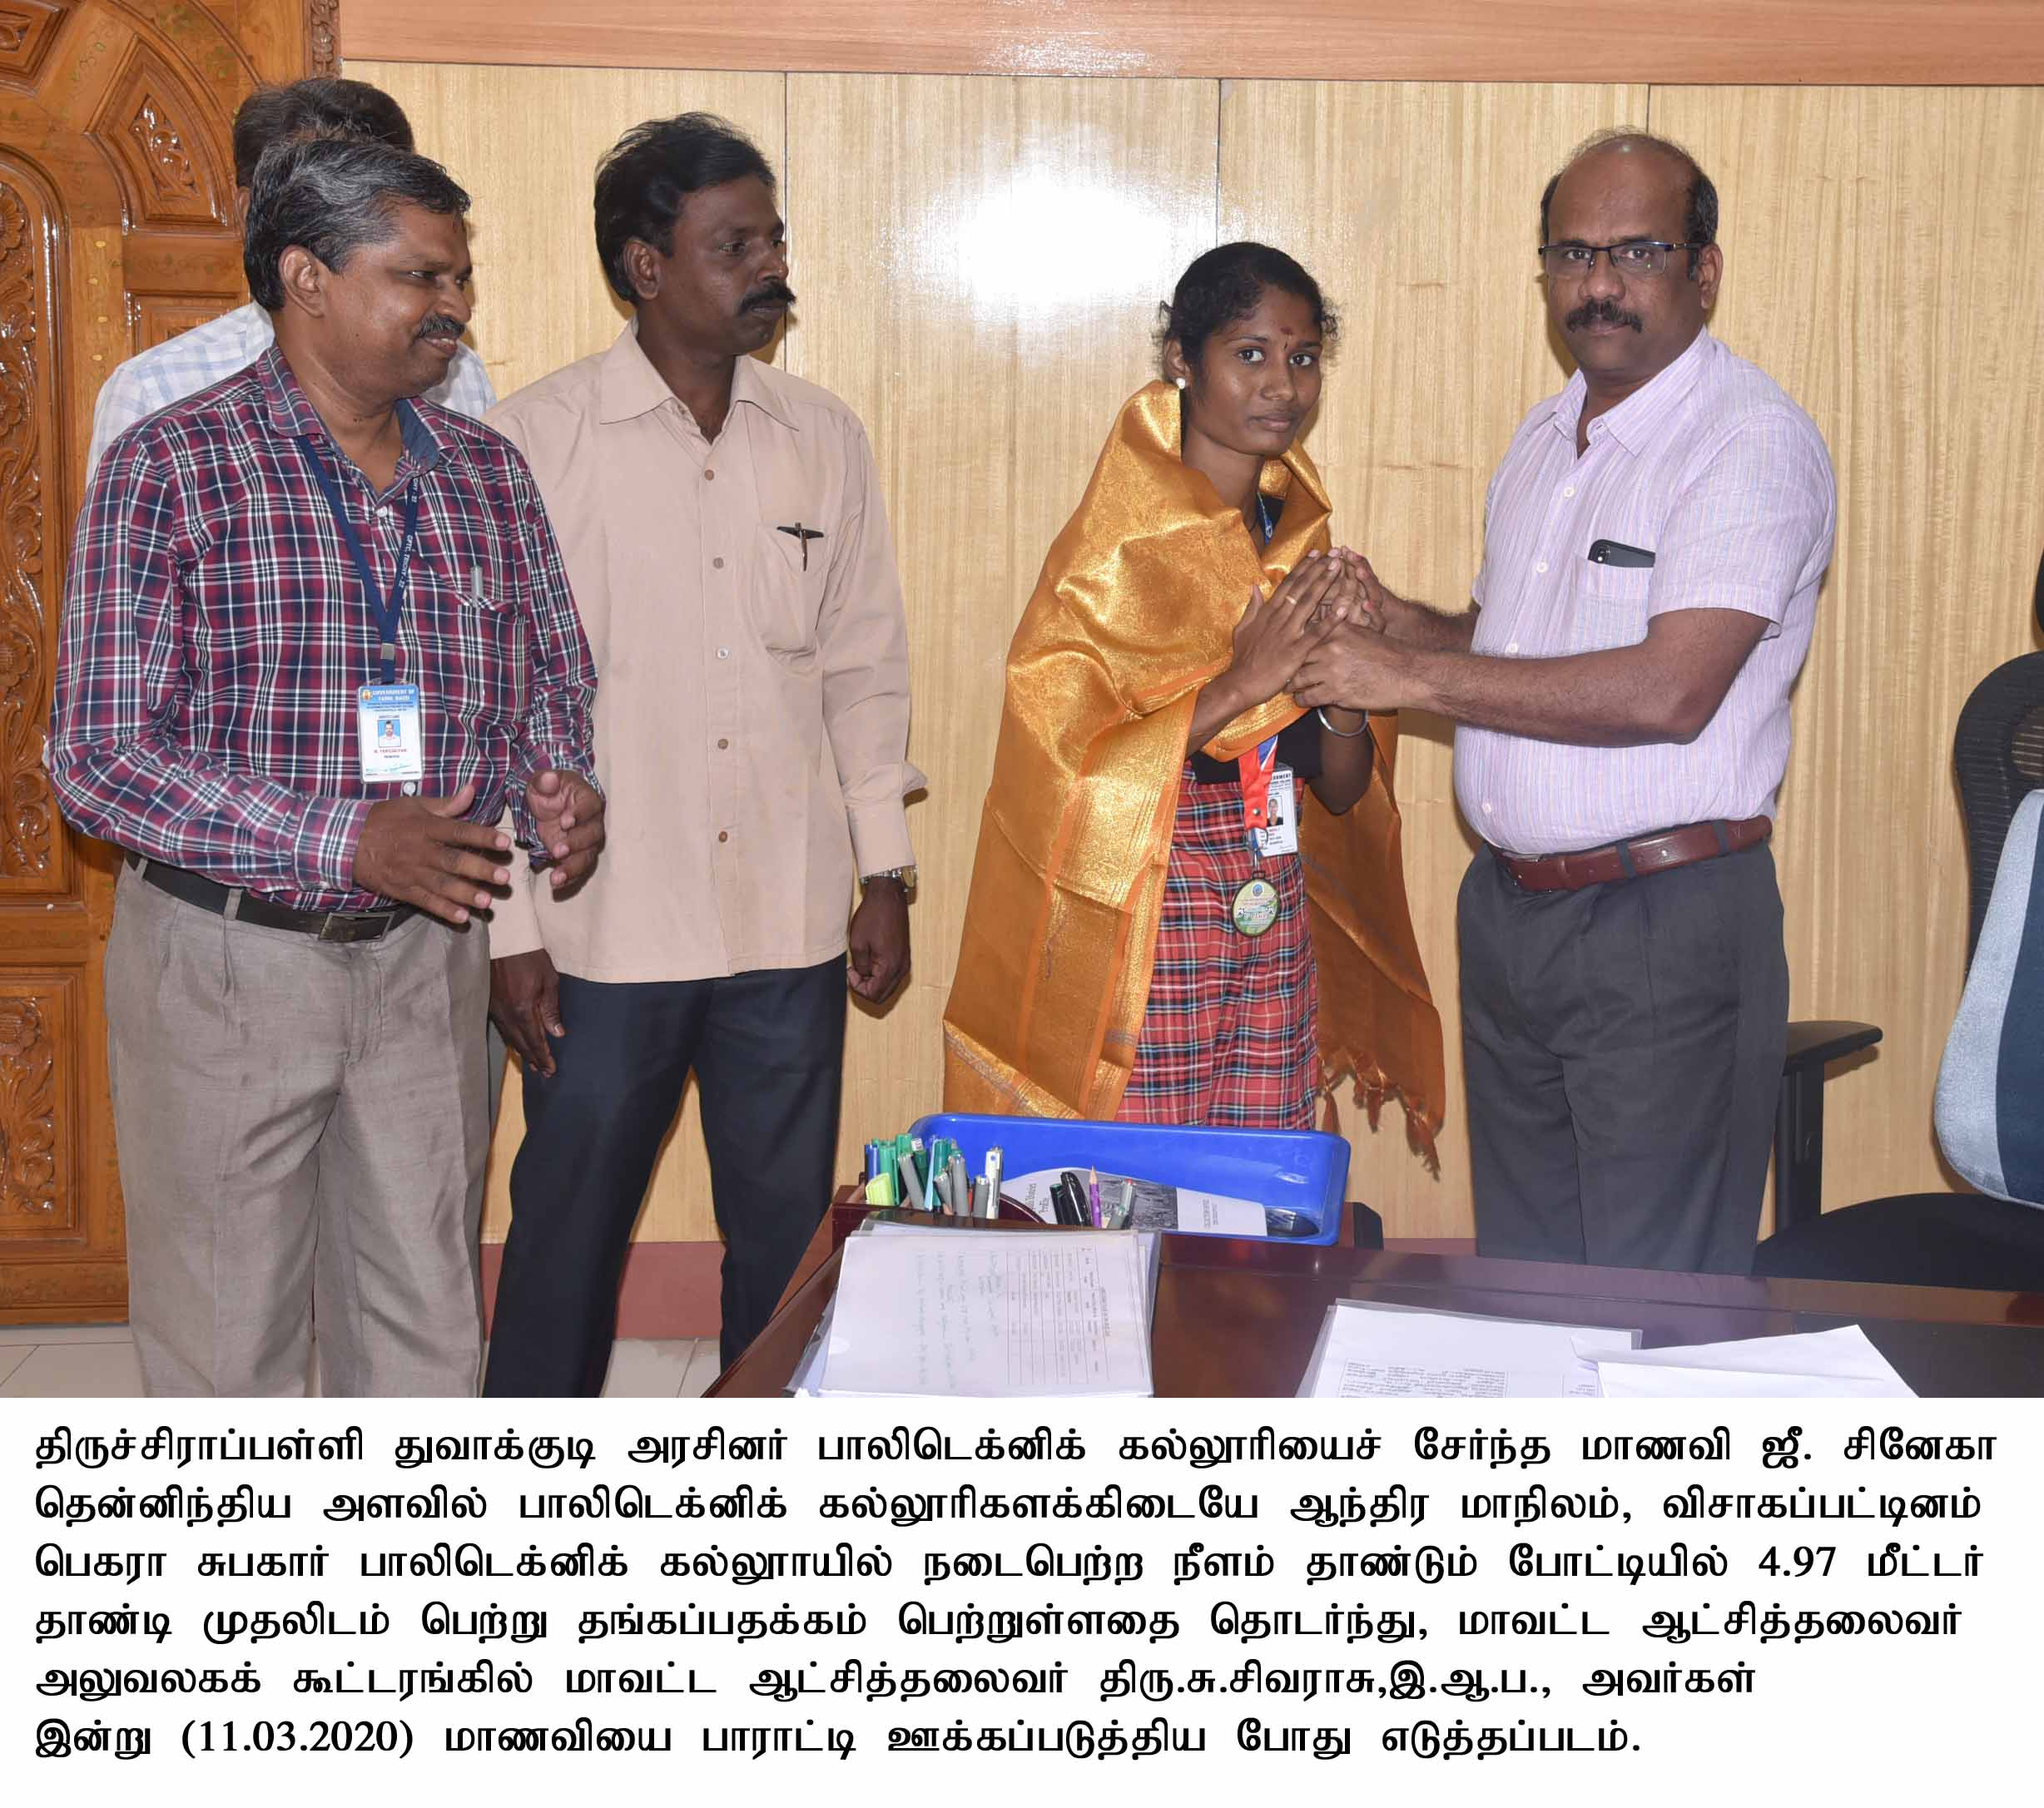 District Collector Appreciated Student - Winner of gold medal in the National Long Jump Competition